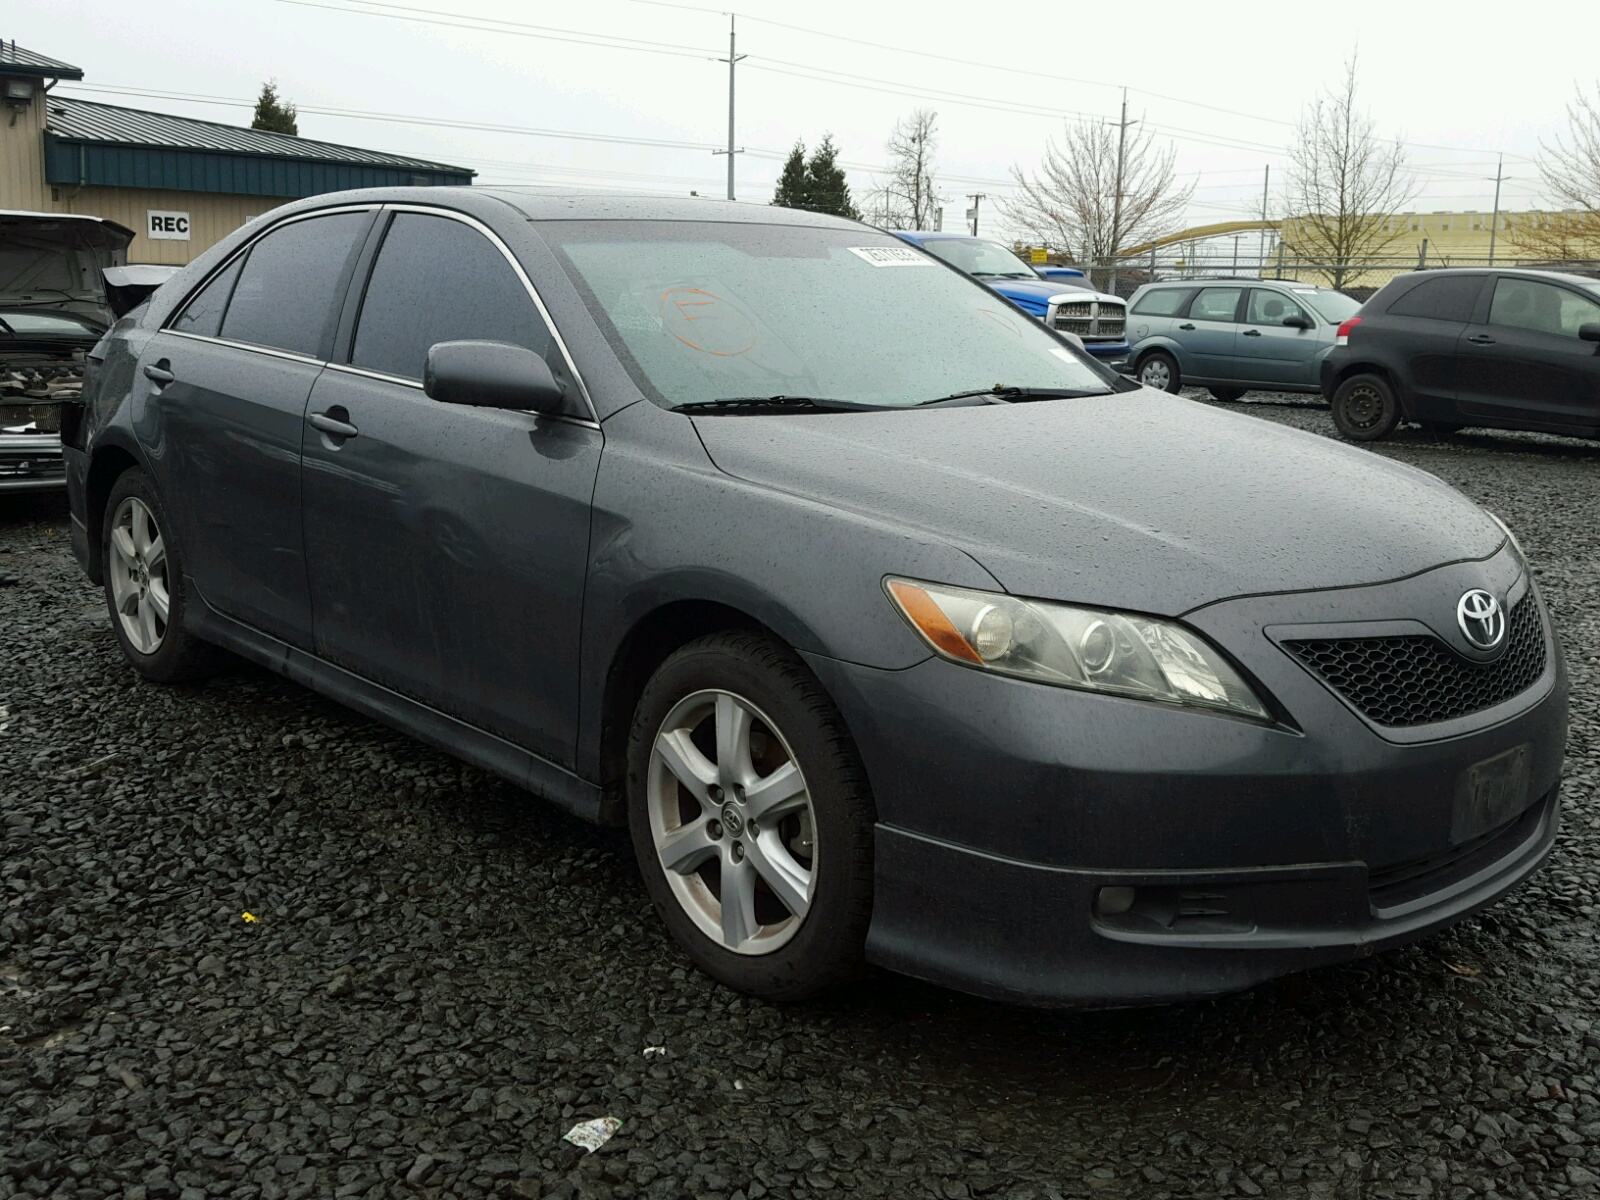 Auto Auction Ended on VIN: JTEHT05J532033043 2003 TOYOTA LAND CRUIS in CT - HARTFORD